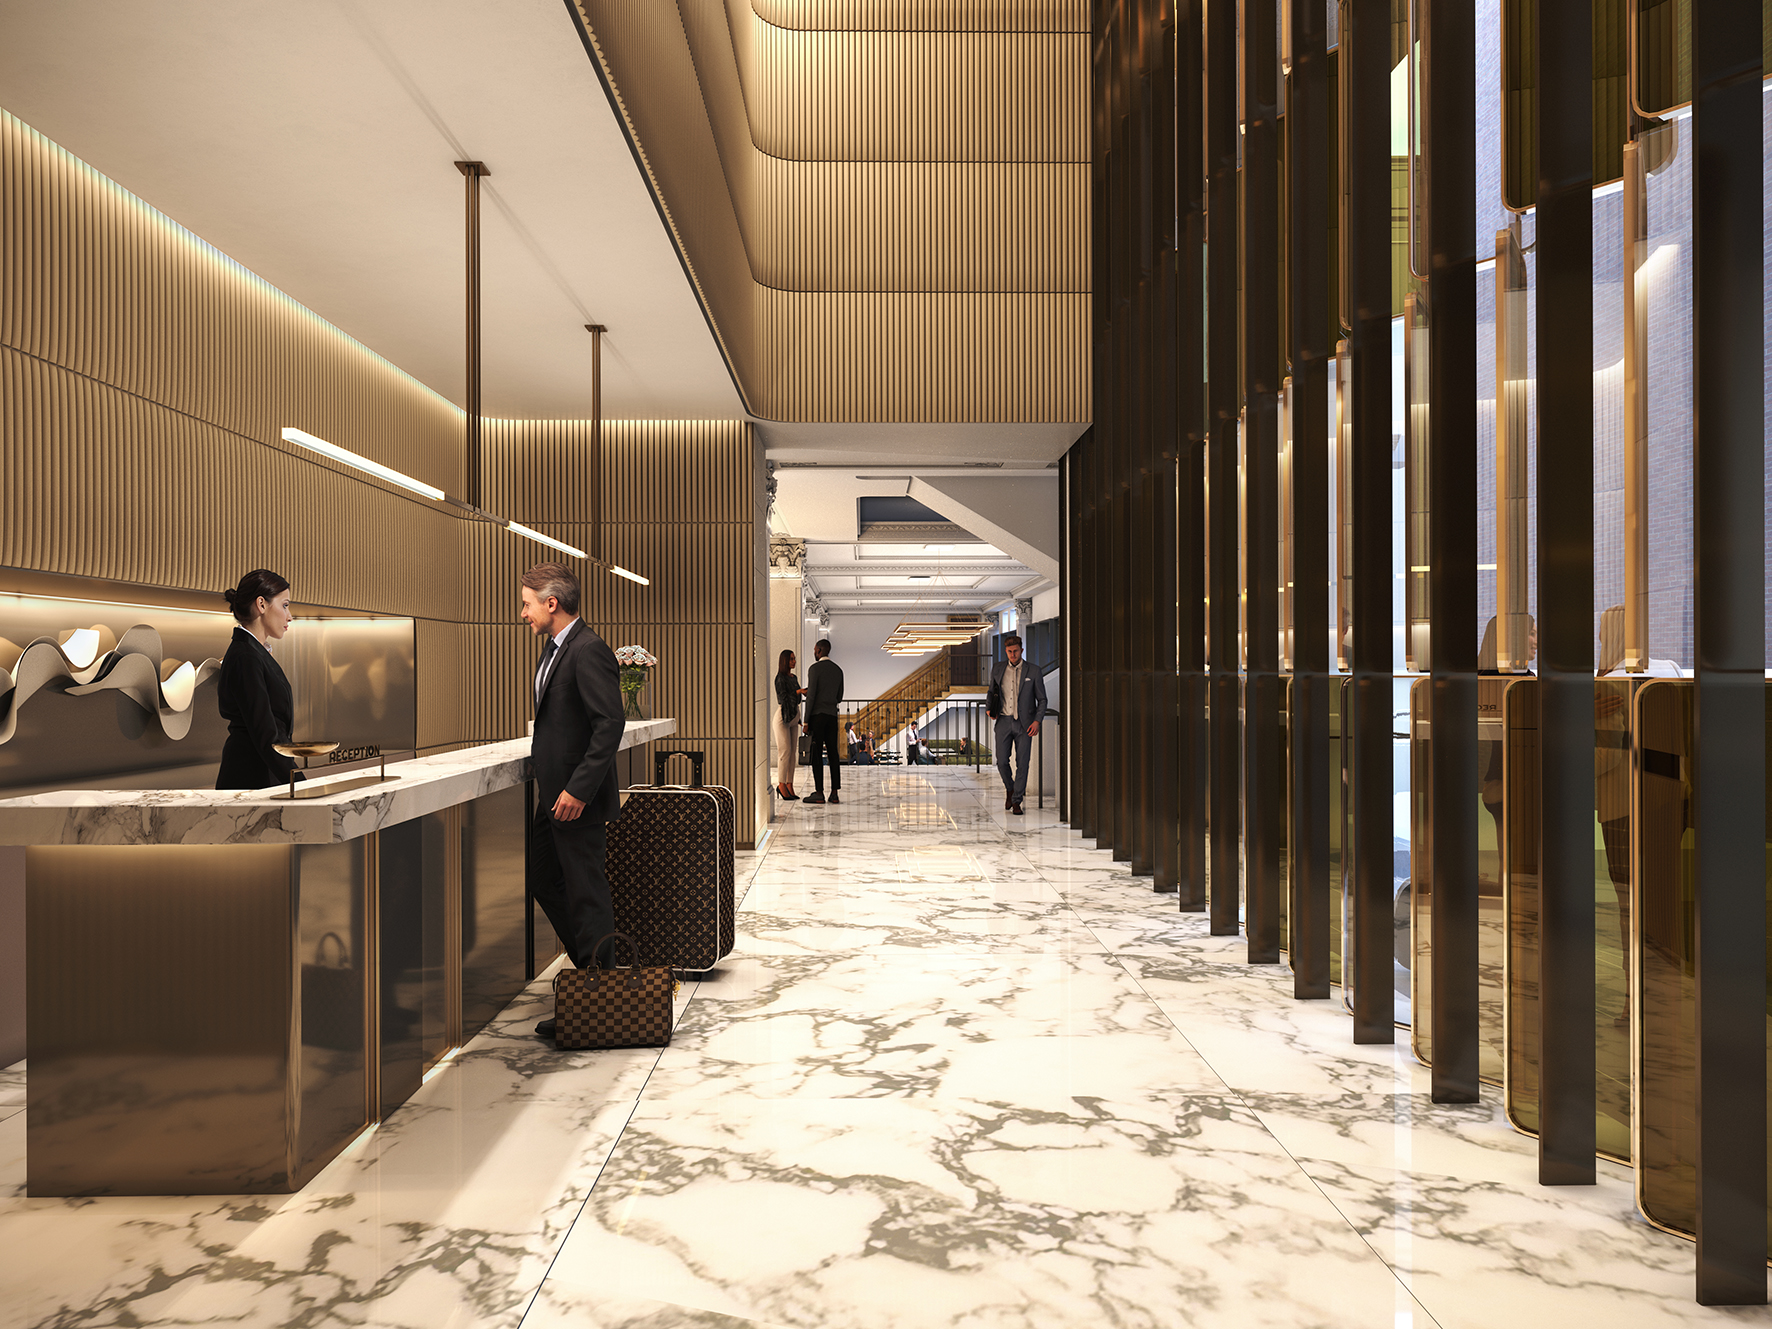 Singapore tycoon Michael Kum's plans to launch the Hilton Hotel at his Bourke Street development.